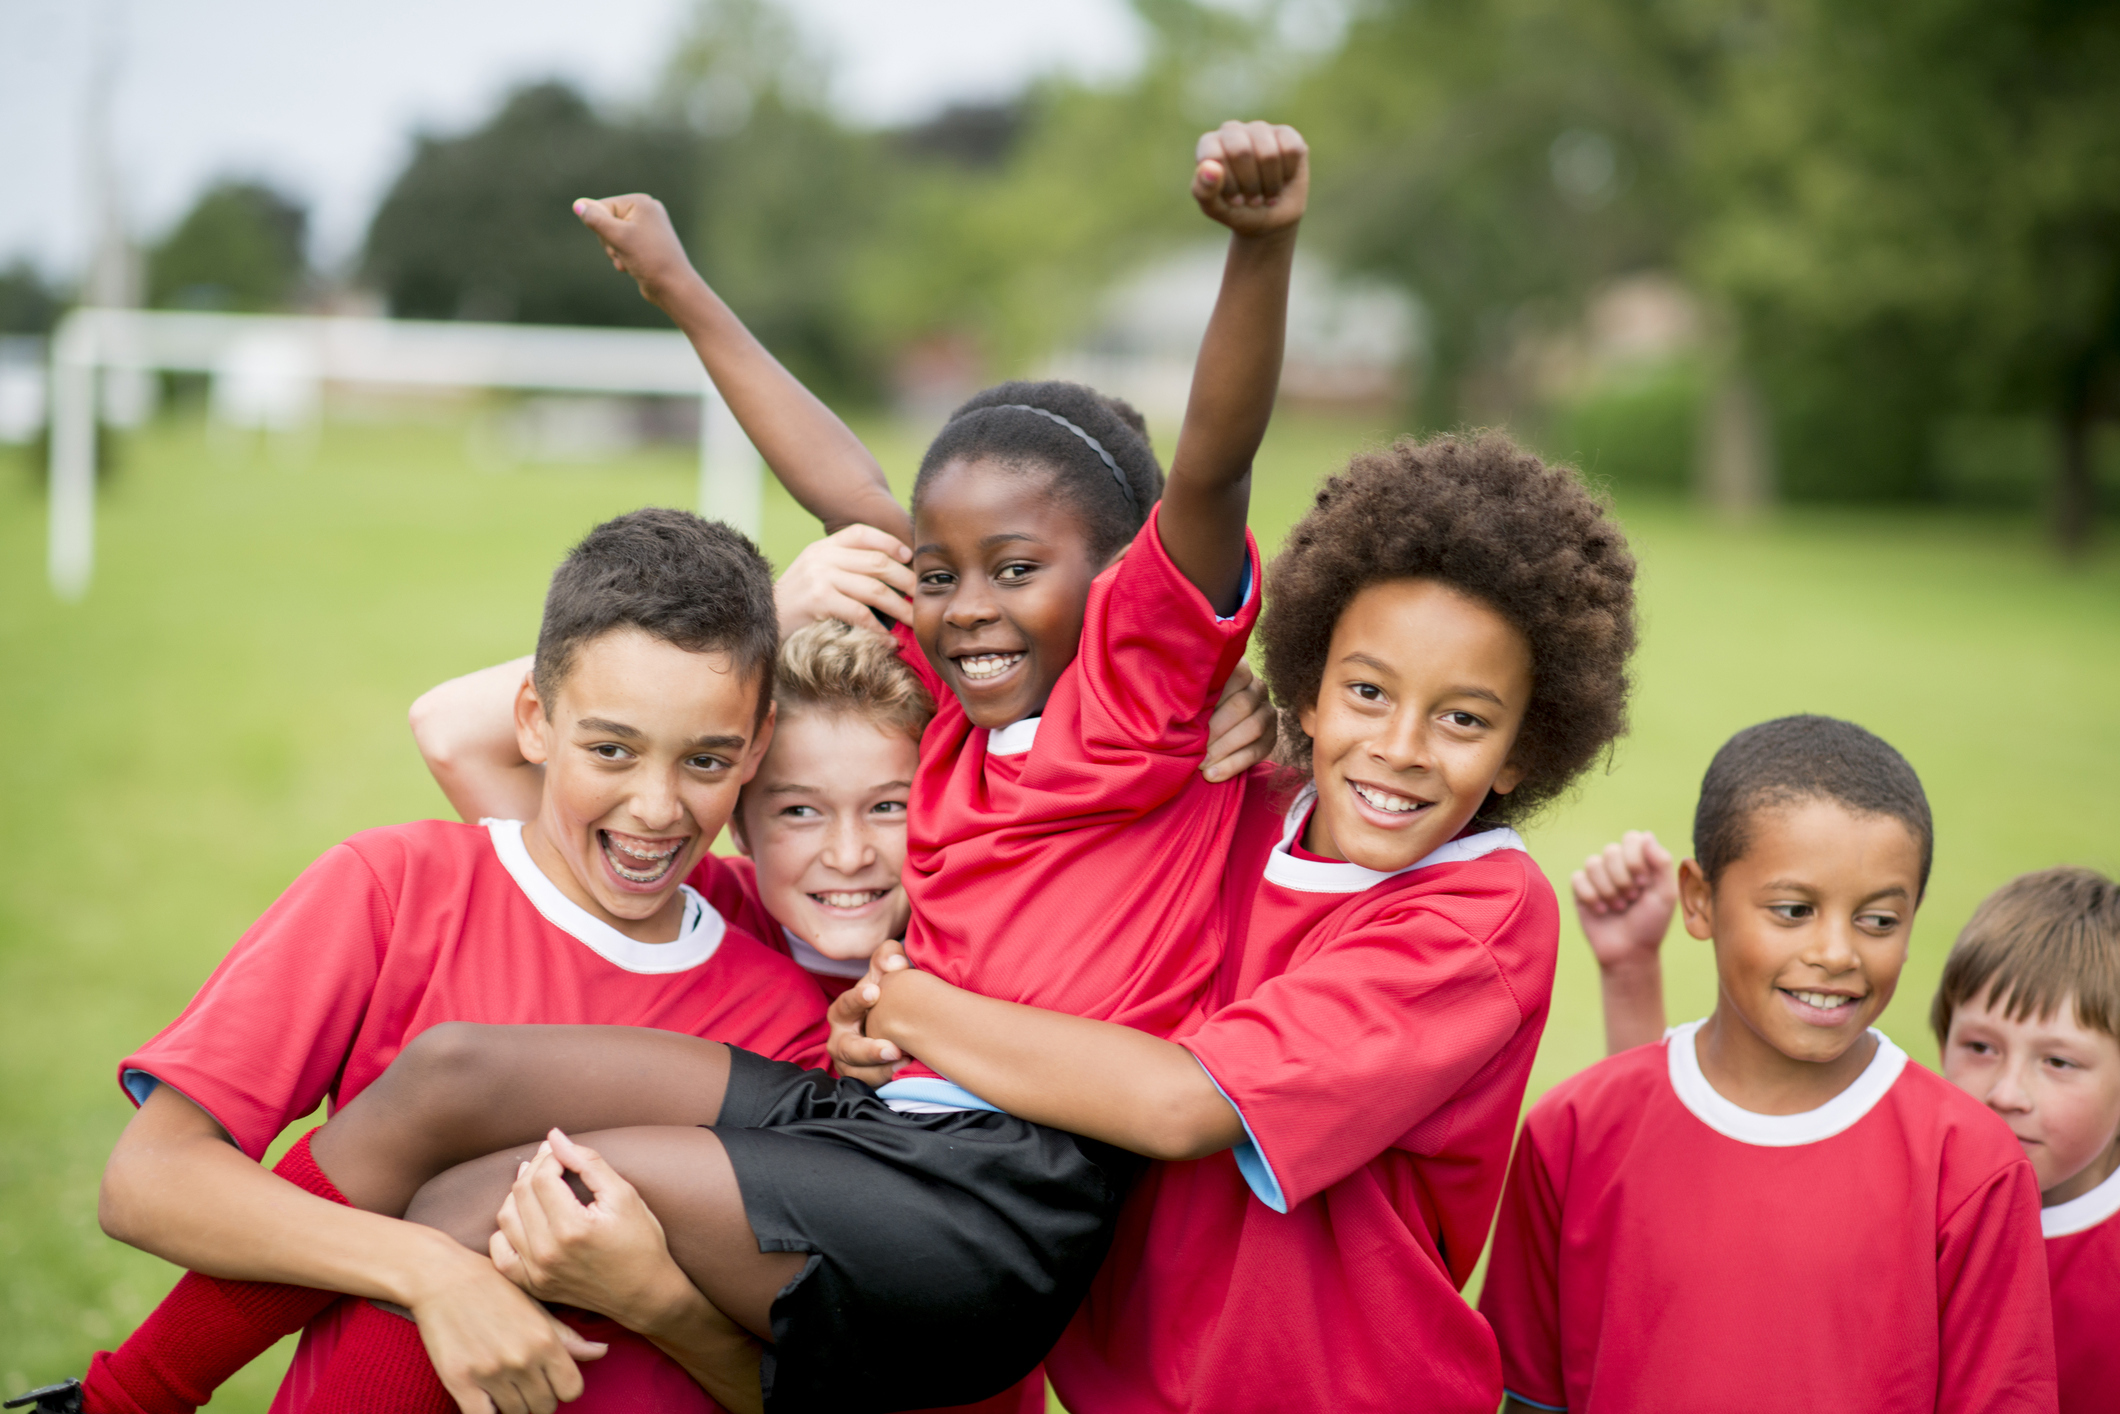 Quality Sport The Art Of Creating Good Activity Programs